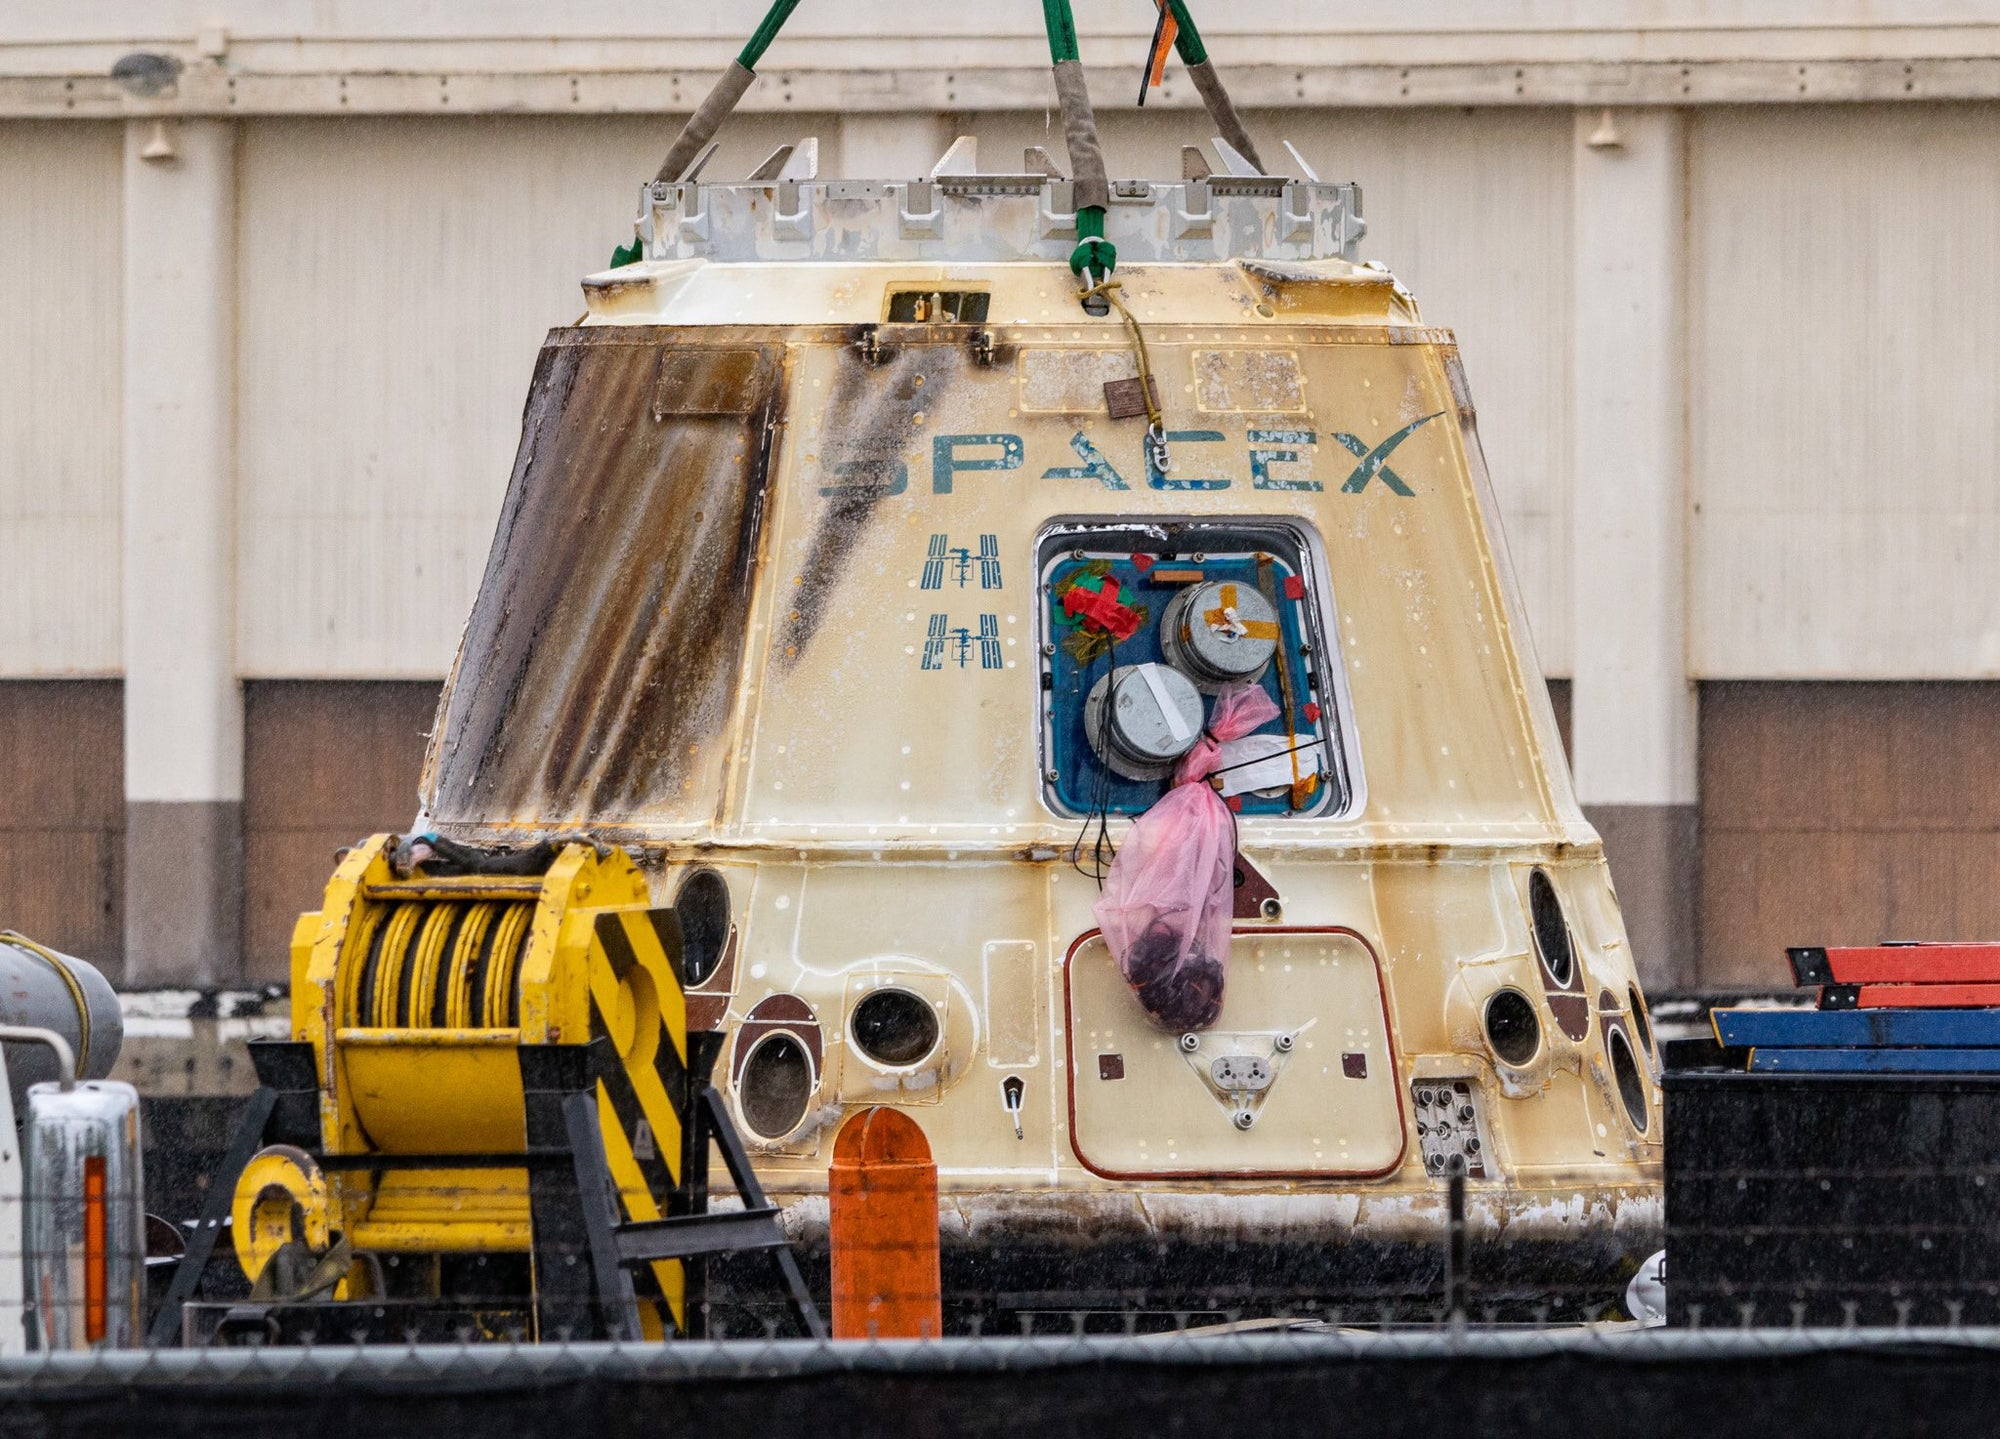 SpaceX retires first iteration of the Dragon spacecraft after ocean recovery